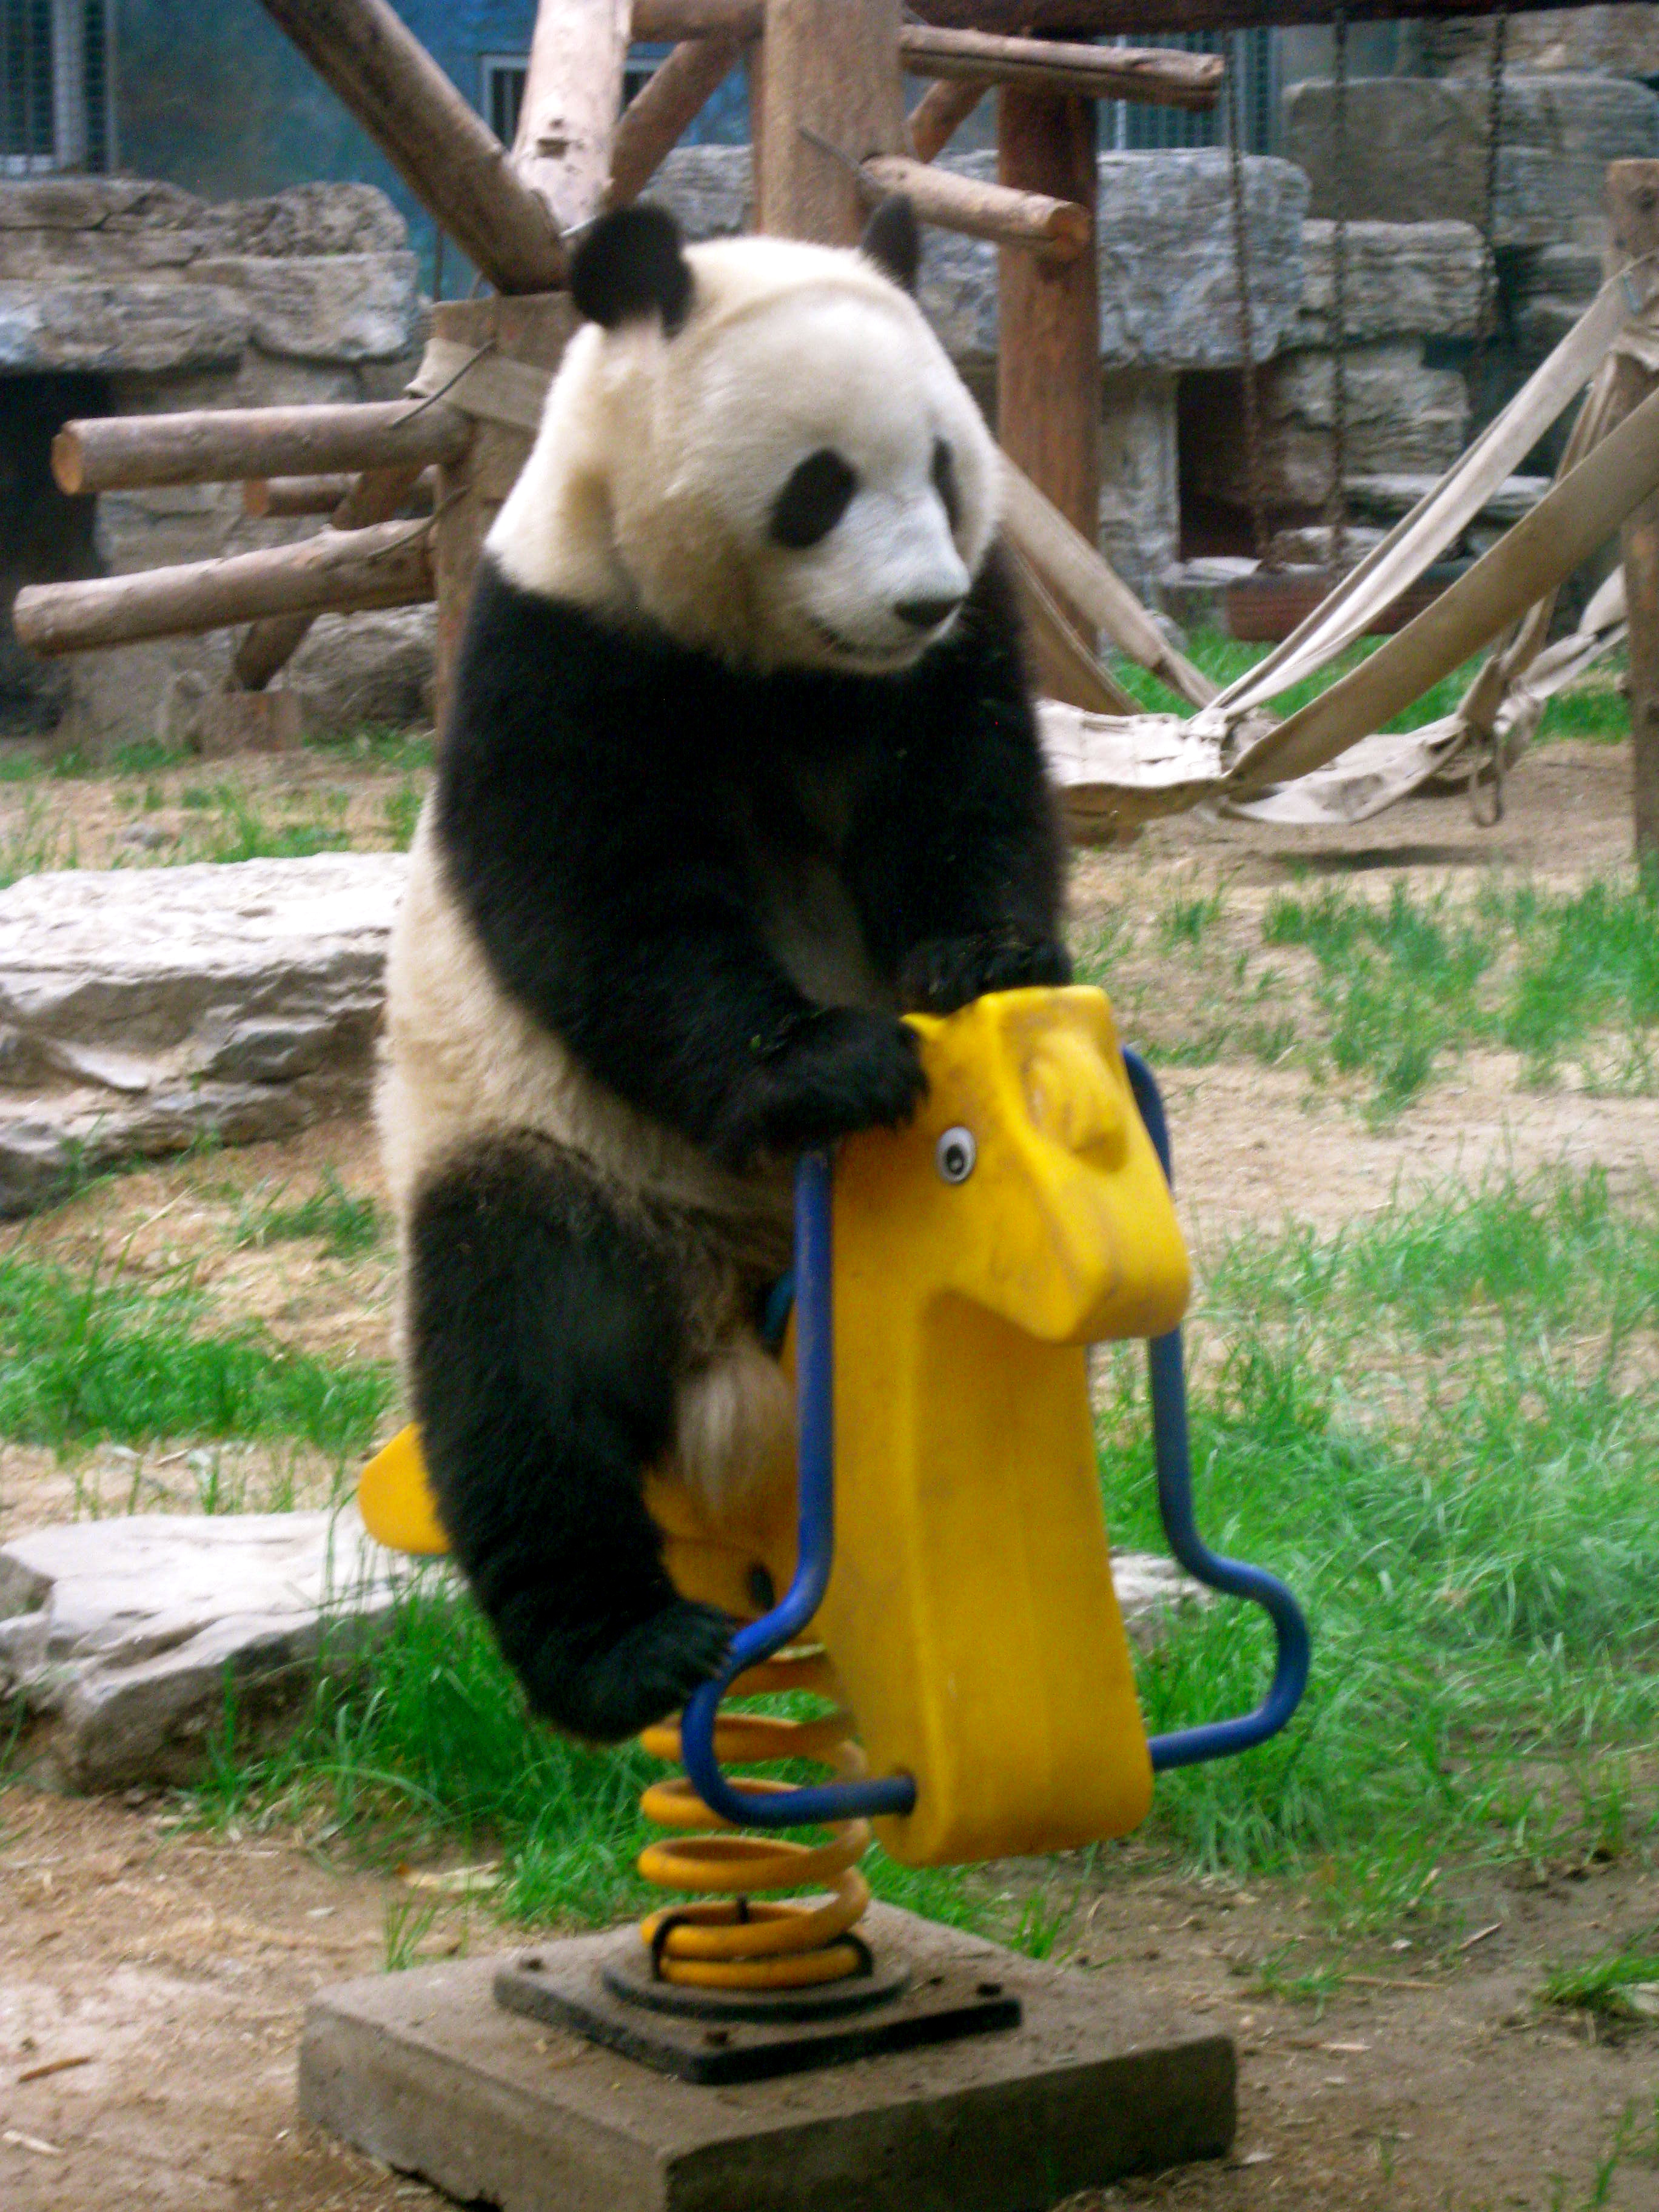 animals panda doing human things funny images mojly 19 28 Animals Doing Human Things Will Make Your Day (28 Images)